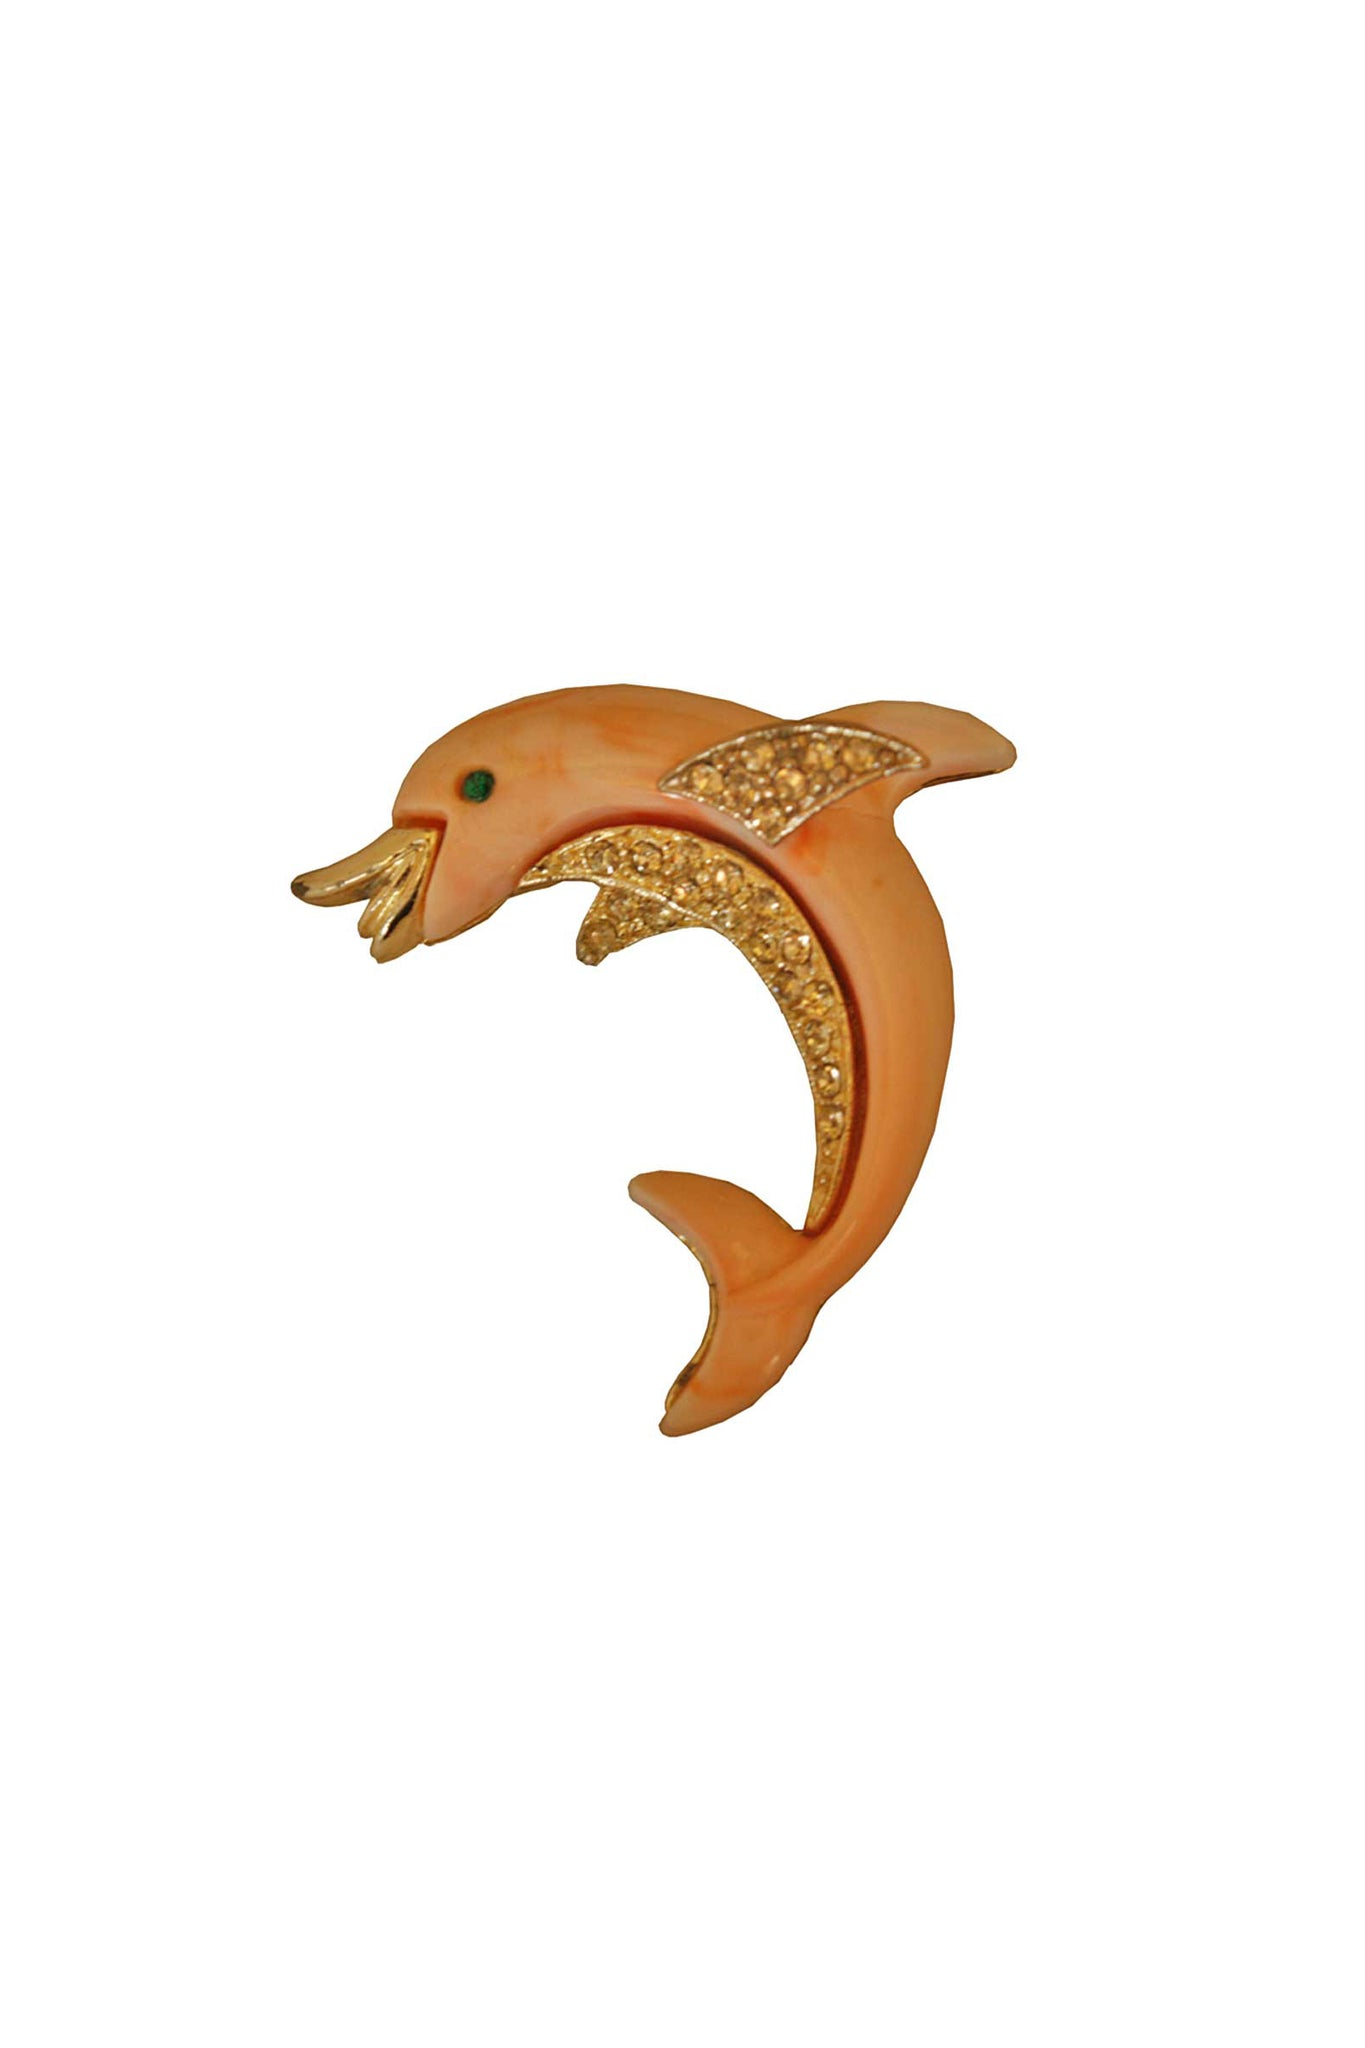 Vintage dolphin brooch - SoLovesVintage